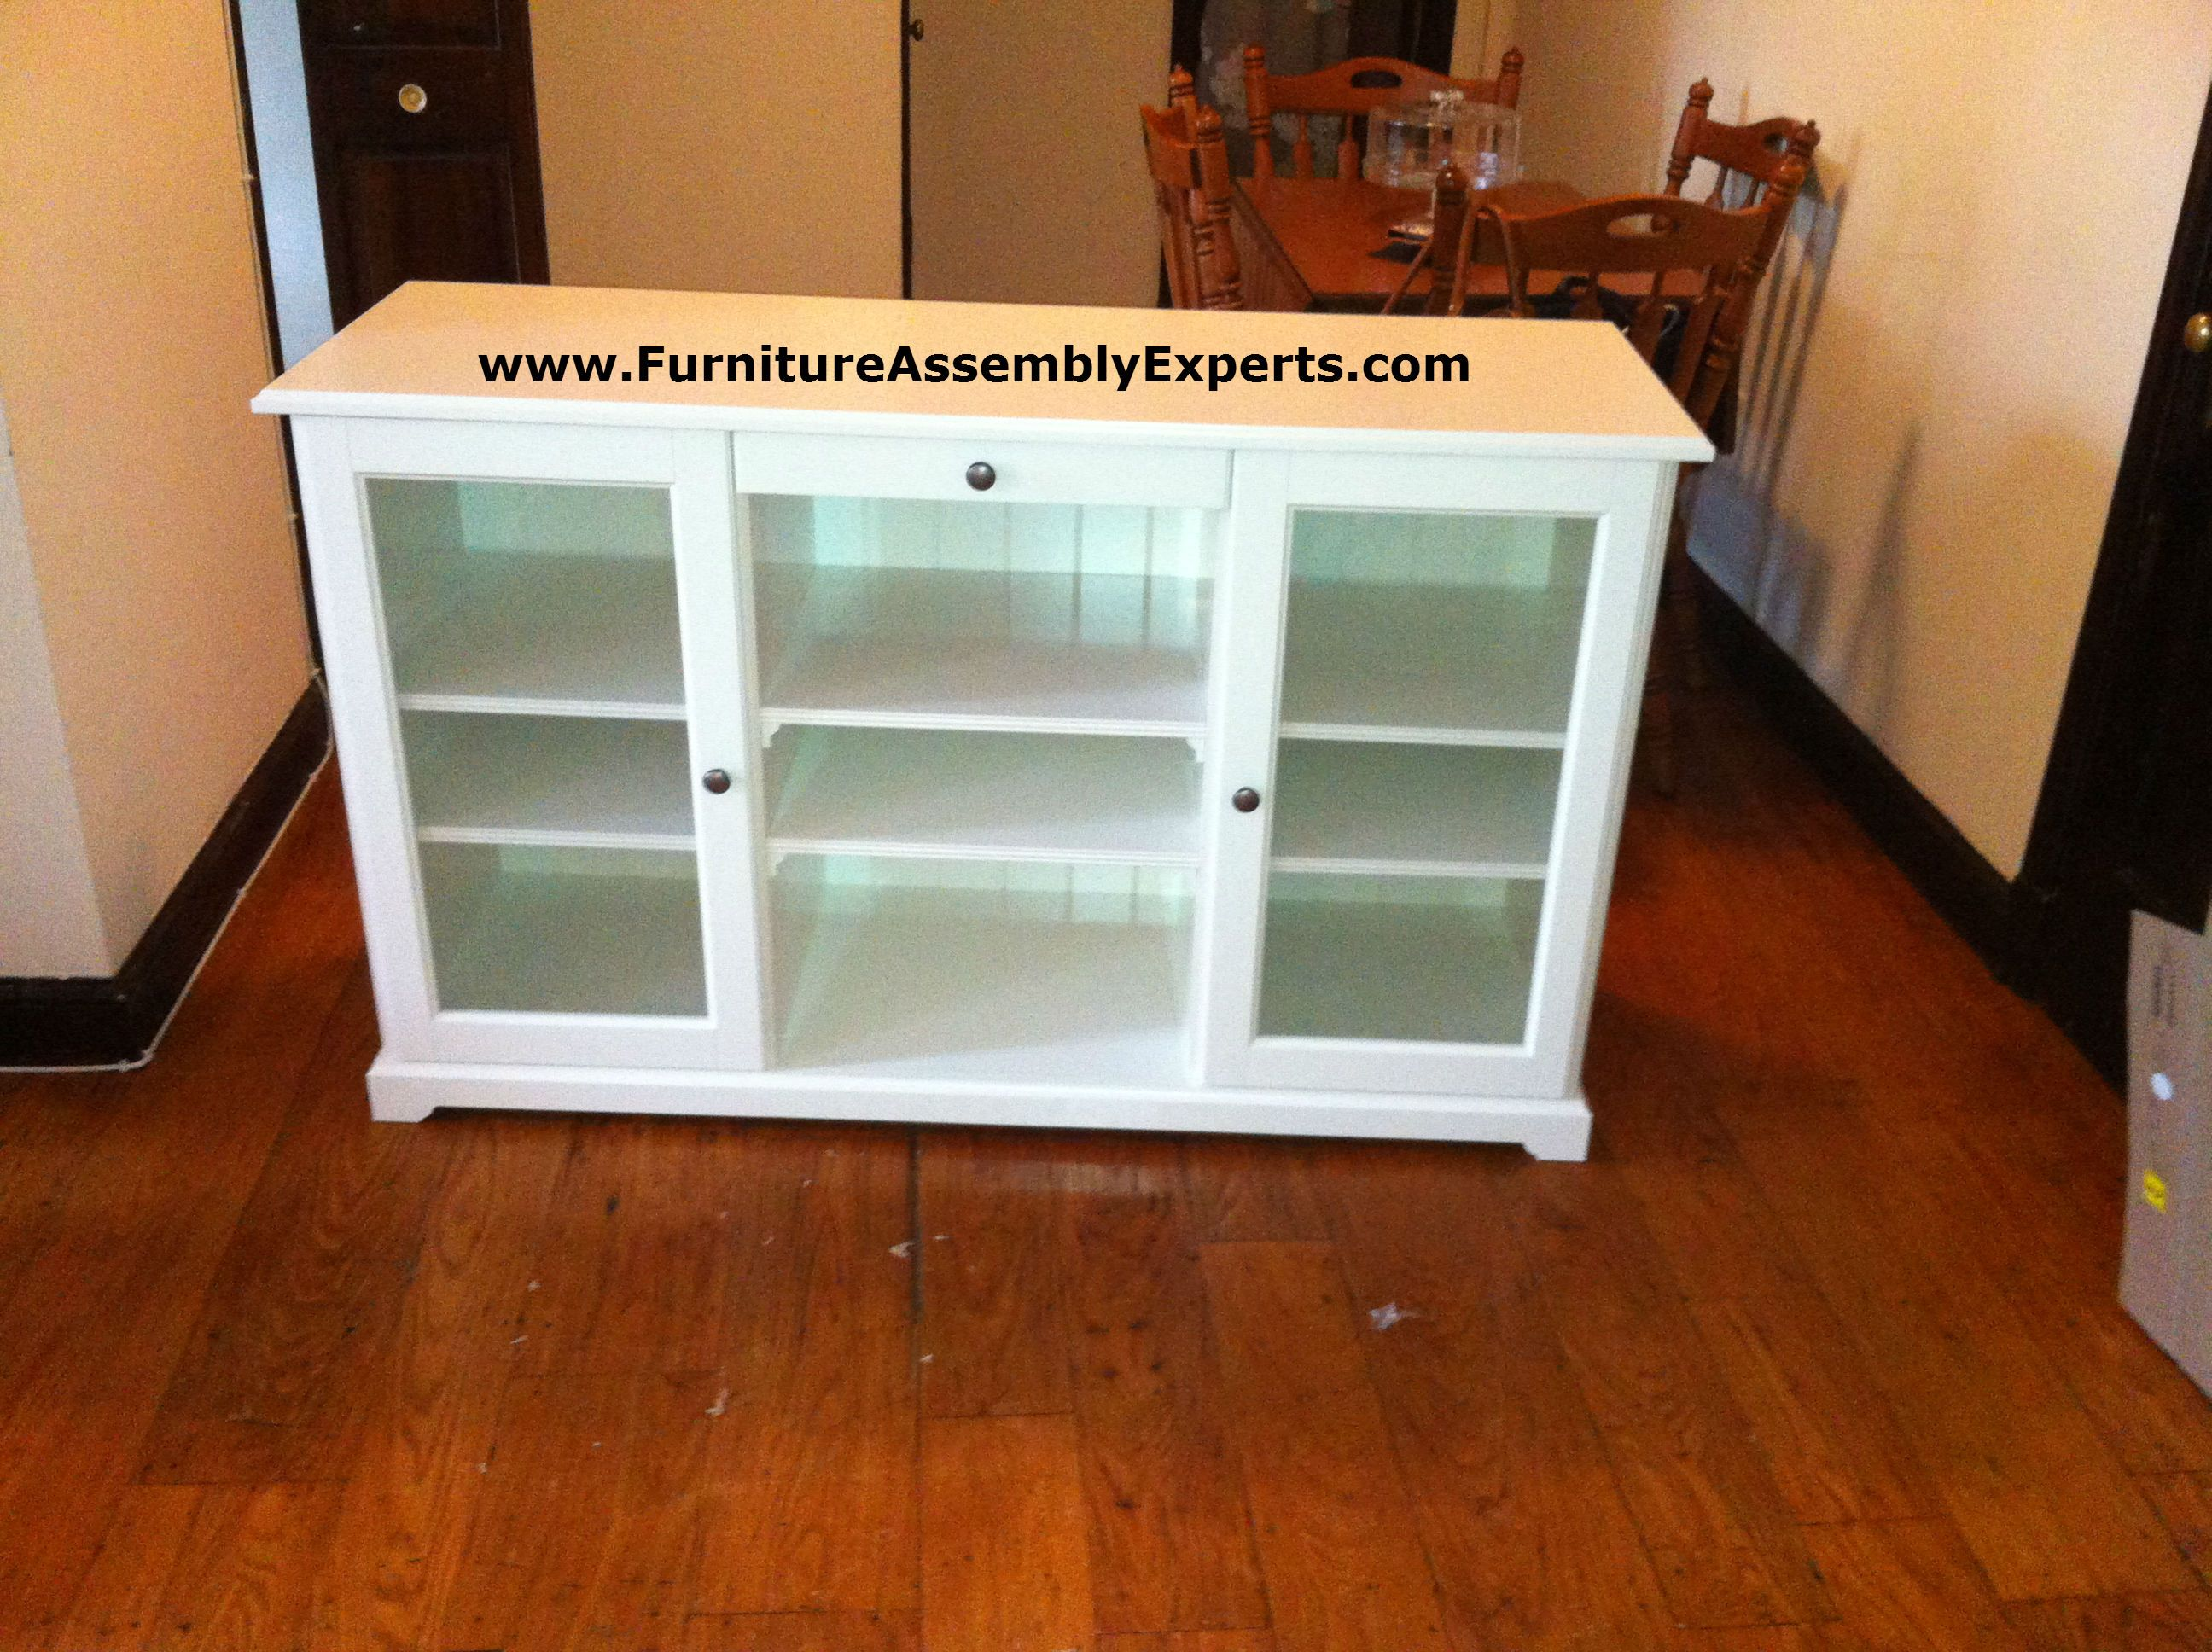 Ikea Liatorp Sideboard Assembled In Delaware By Furniture Assembly Experts  LLC